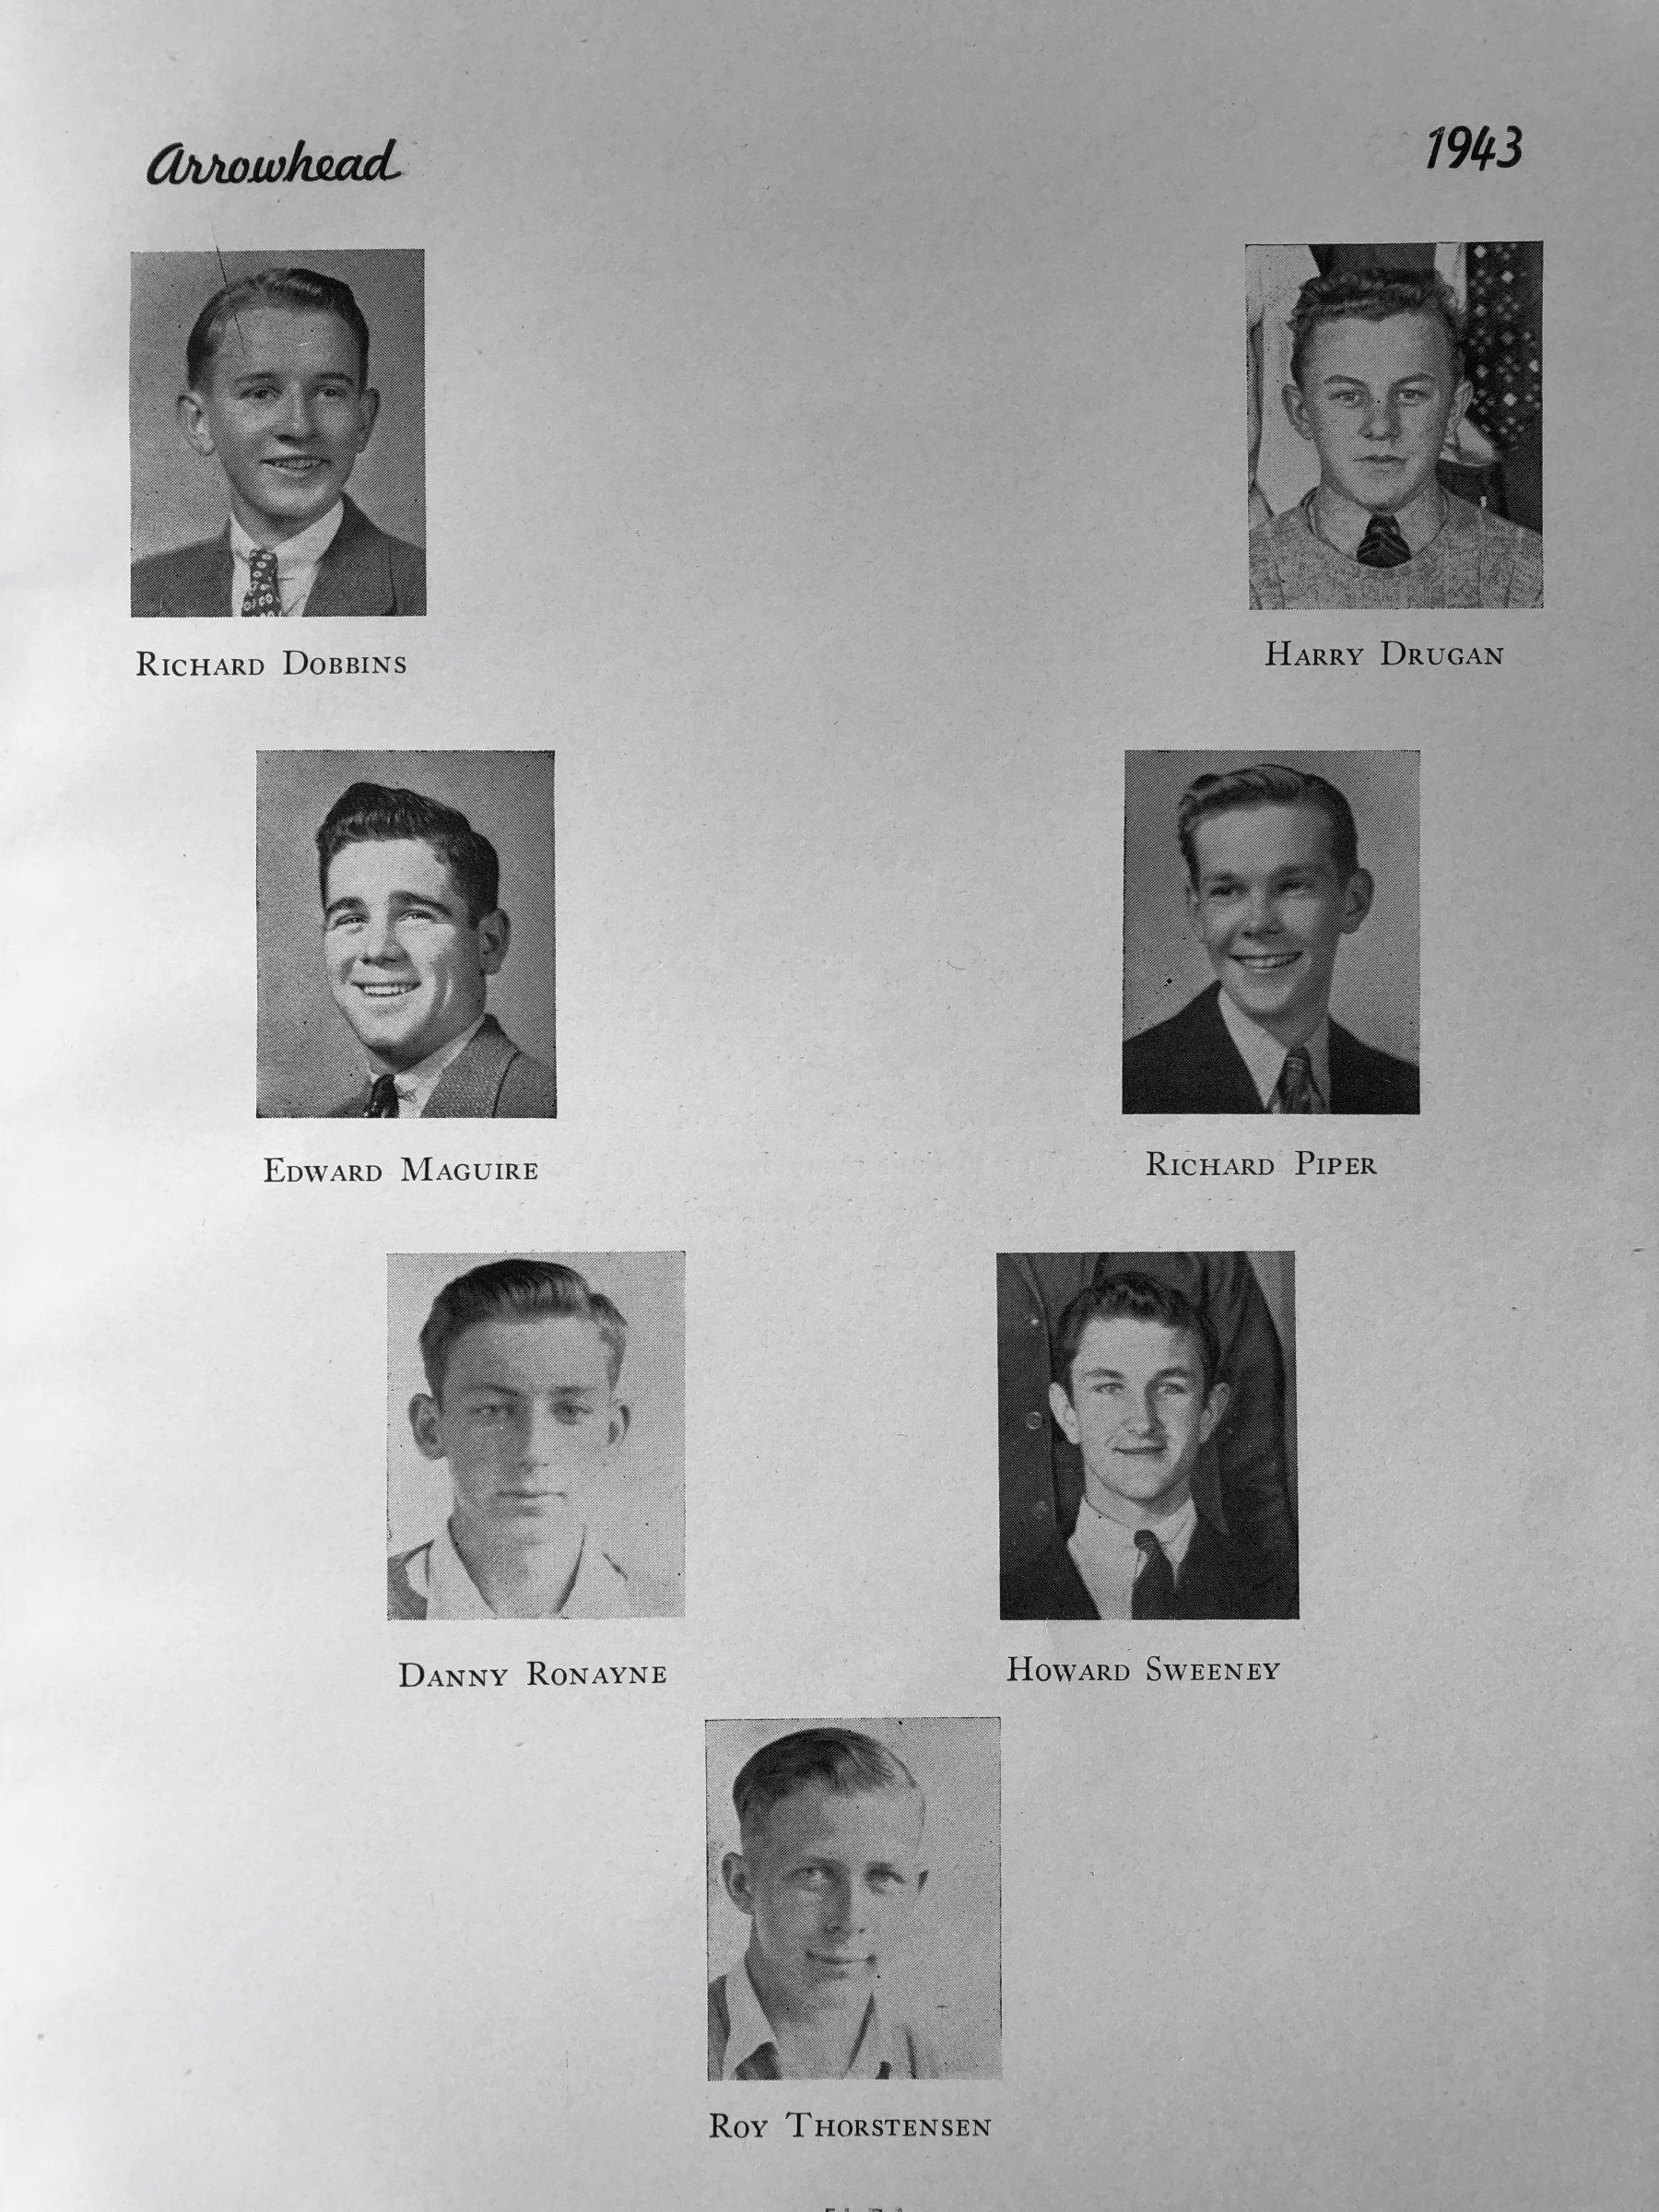 1943 tribute to BHS students in WWII combat